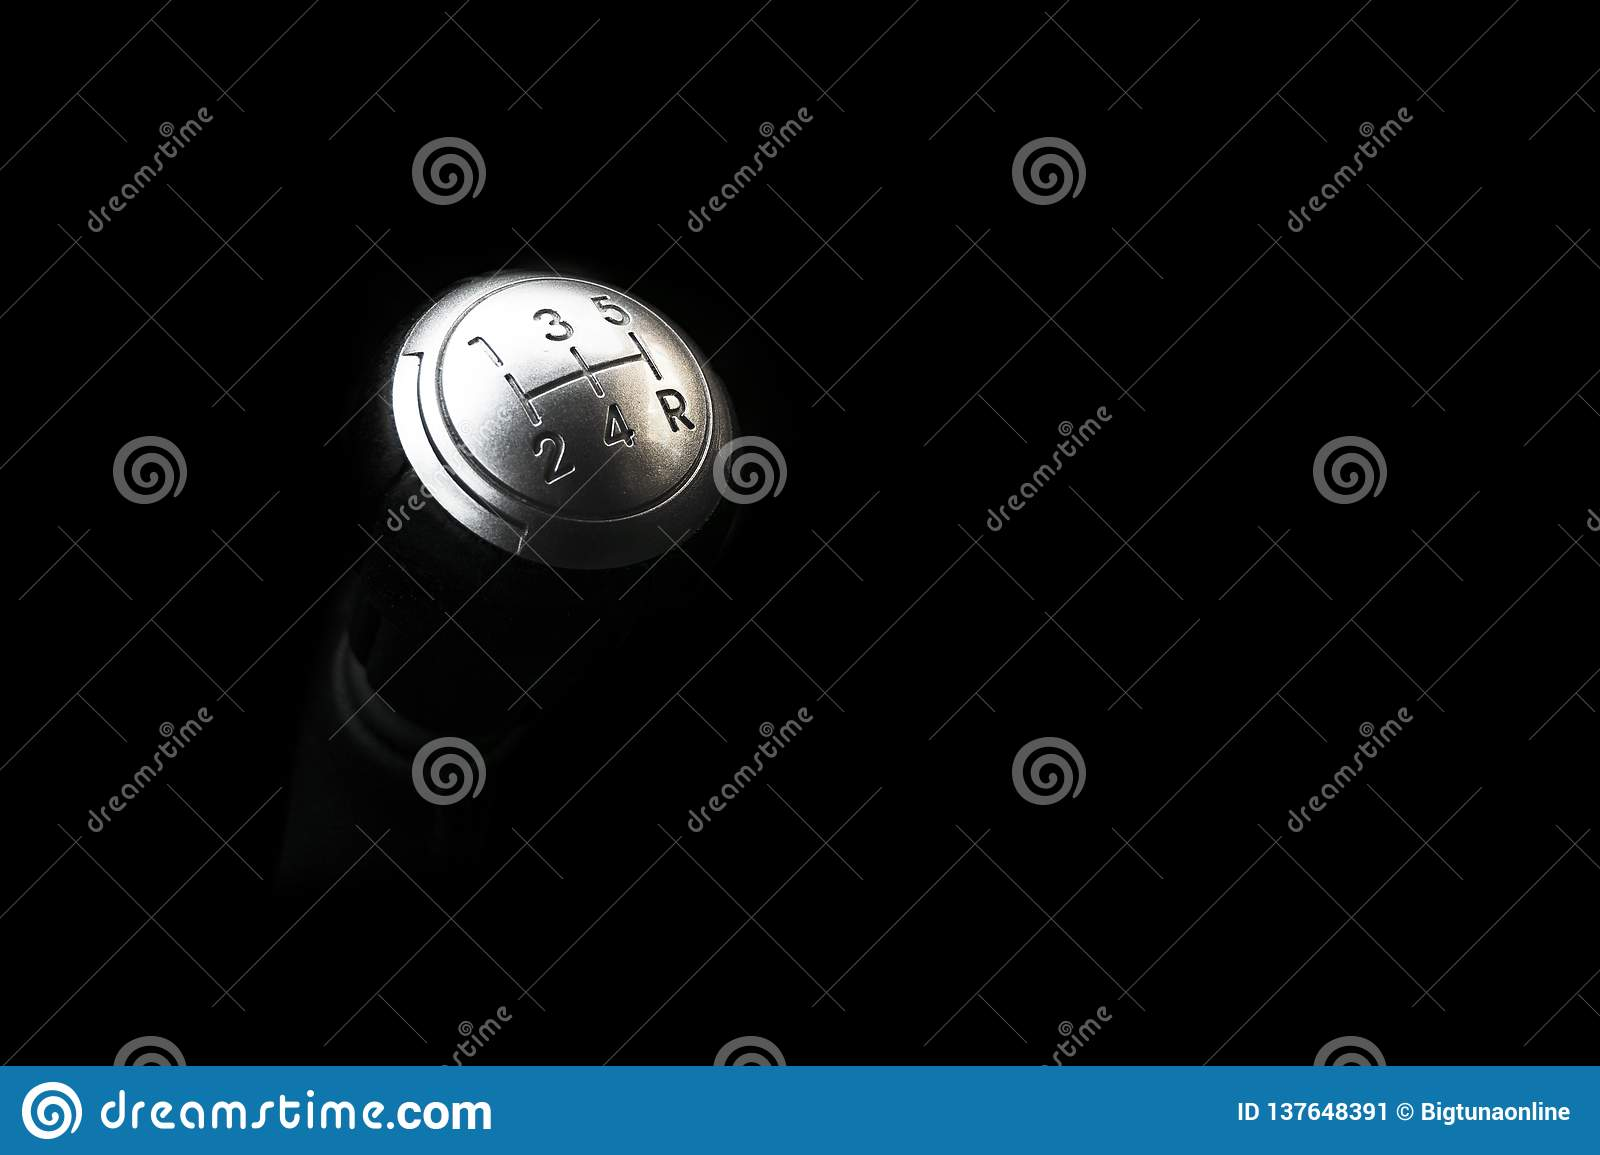 Close up view of a manual gear lever shift isolated on black background. Manual gearbox. Car interior details. Car transmission.Cl